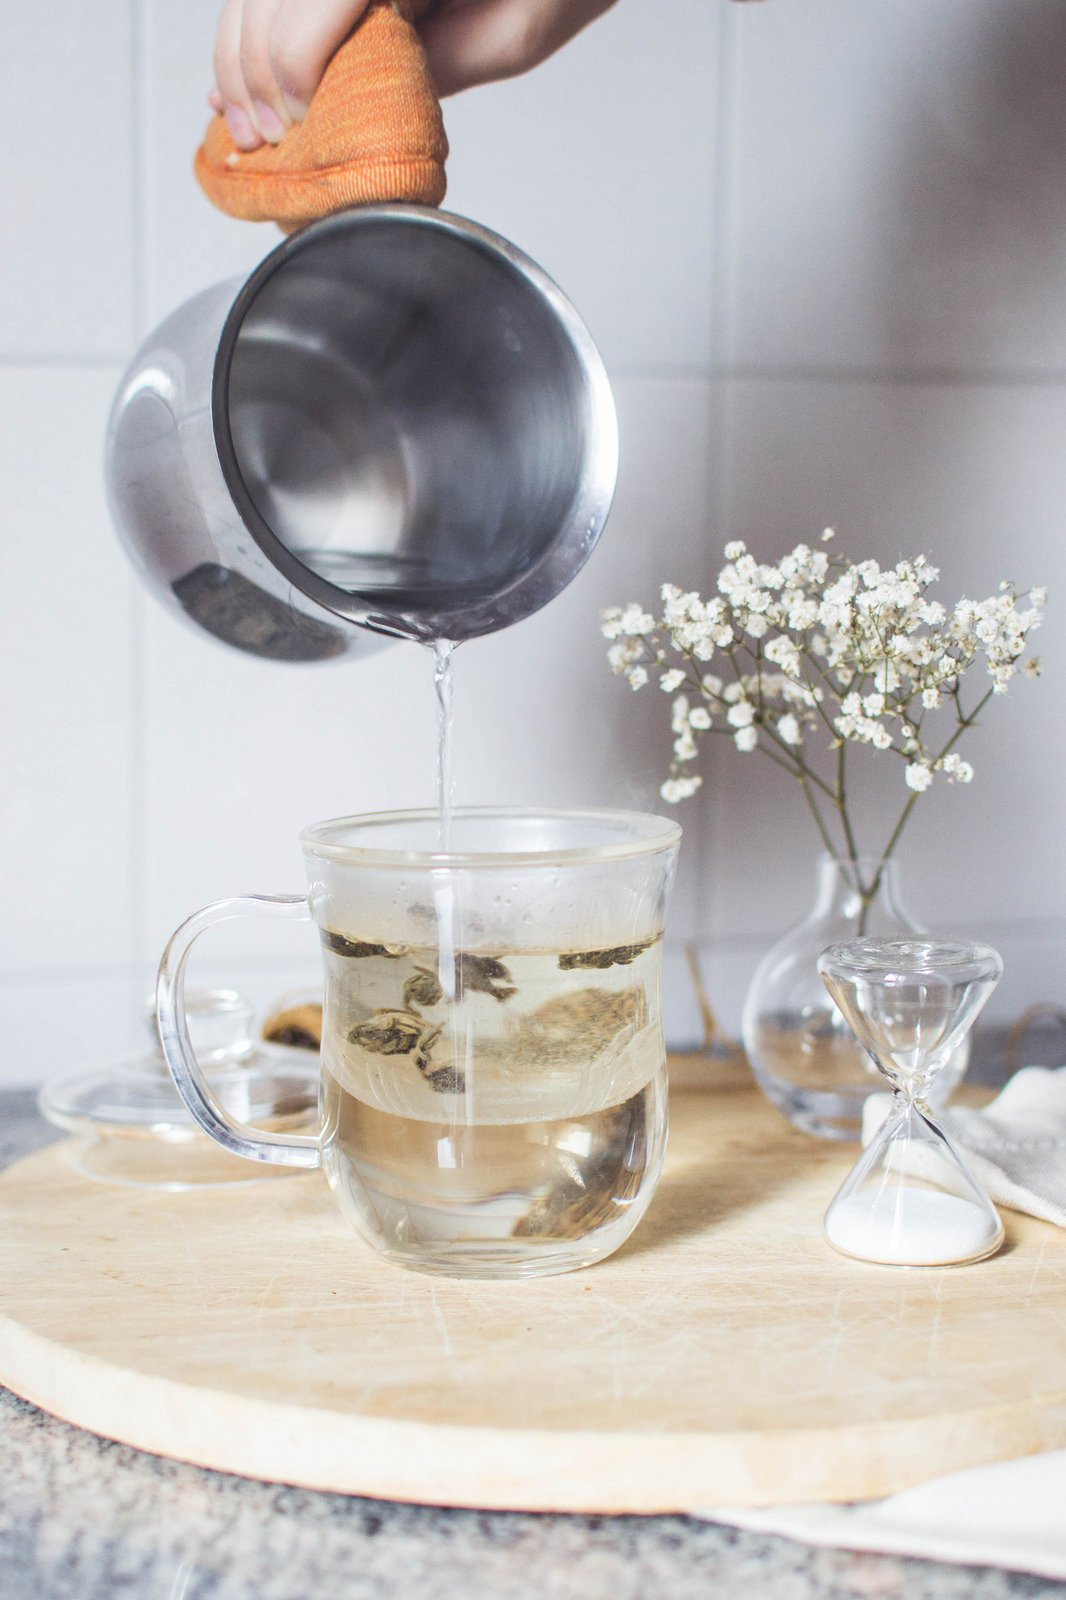 Pouring Hot Water into JING Infuser Mug